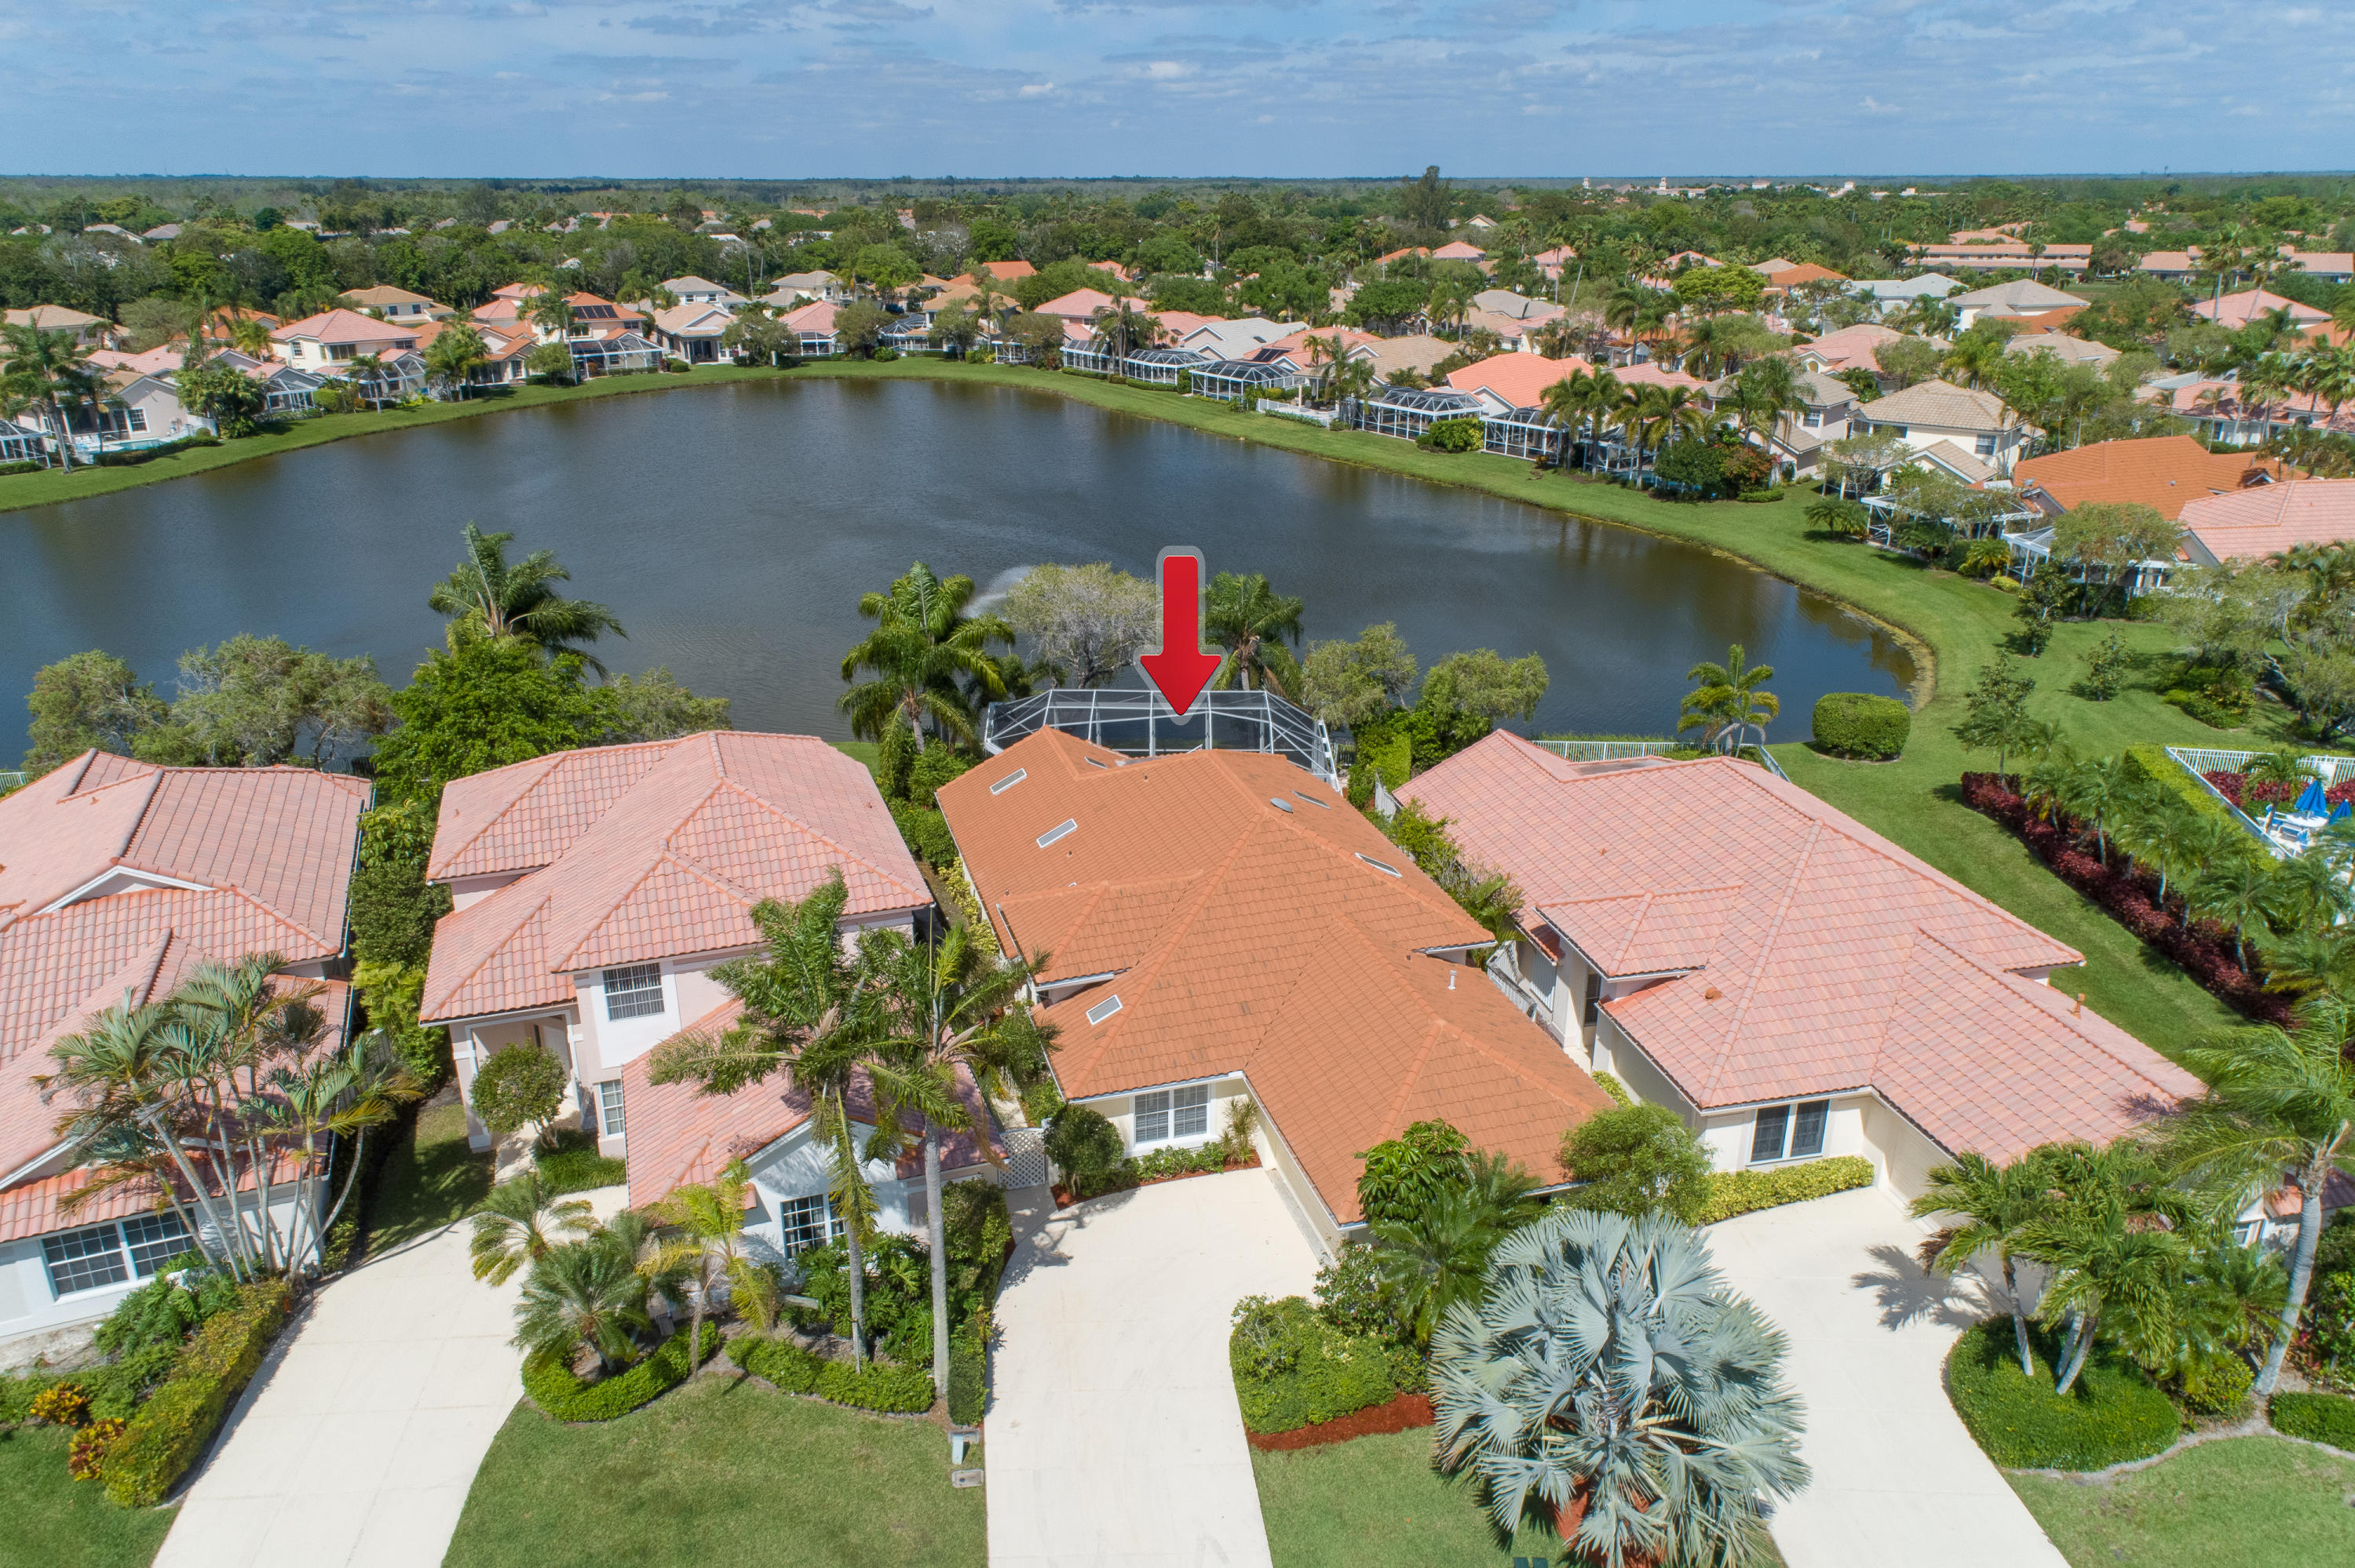 Home for sale in Pga National Resort & Spa Palm Beach Gardens Florida